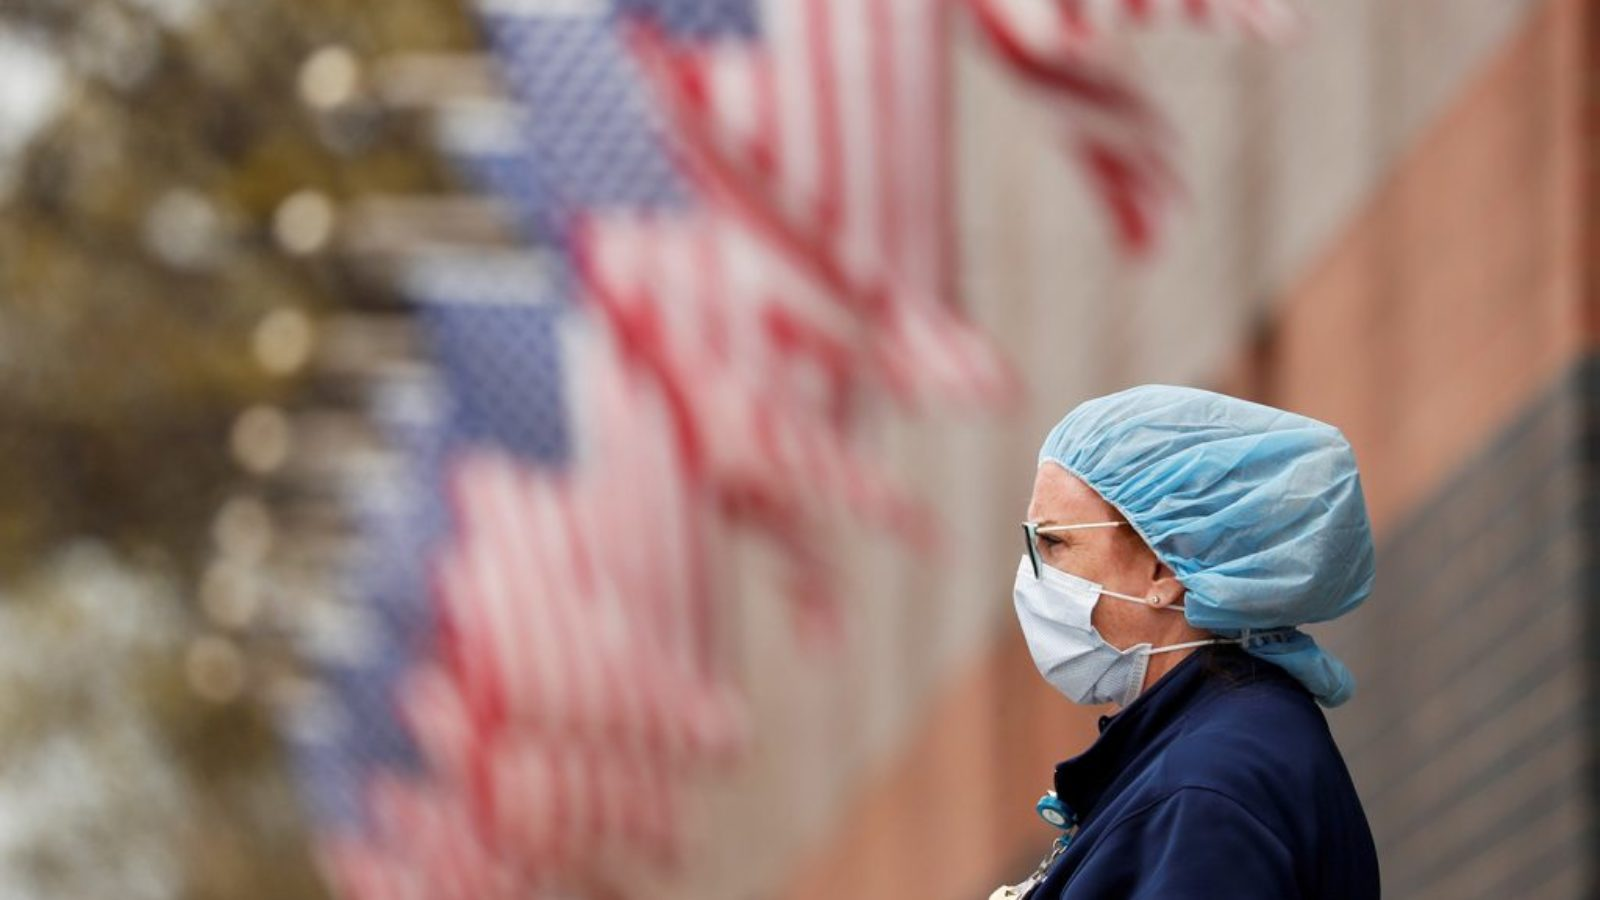 A nurse wearing personal protective equipment in front of a row of American flags